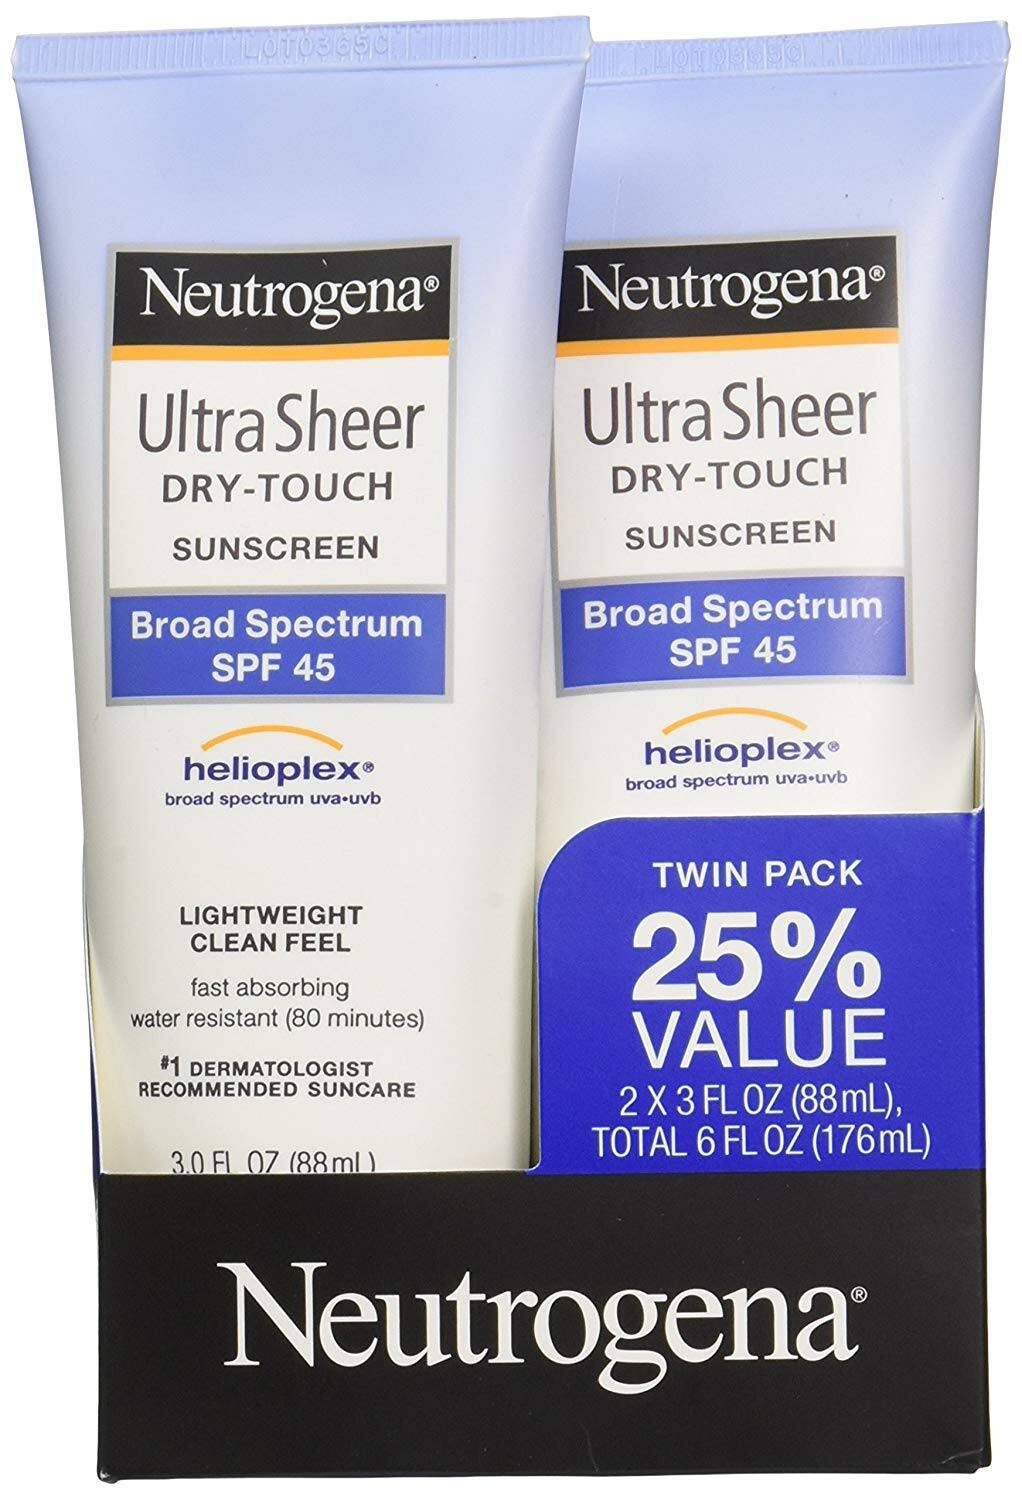 2 pack Neutrogena Ultra Sheer Dry-Touch Water Resistant and Non-Greasy Sunscreen Lotion with Broad Spectrum SPF 45, 3 fl. oz, [SPF 45] $8.39